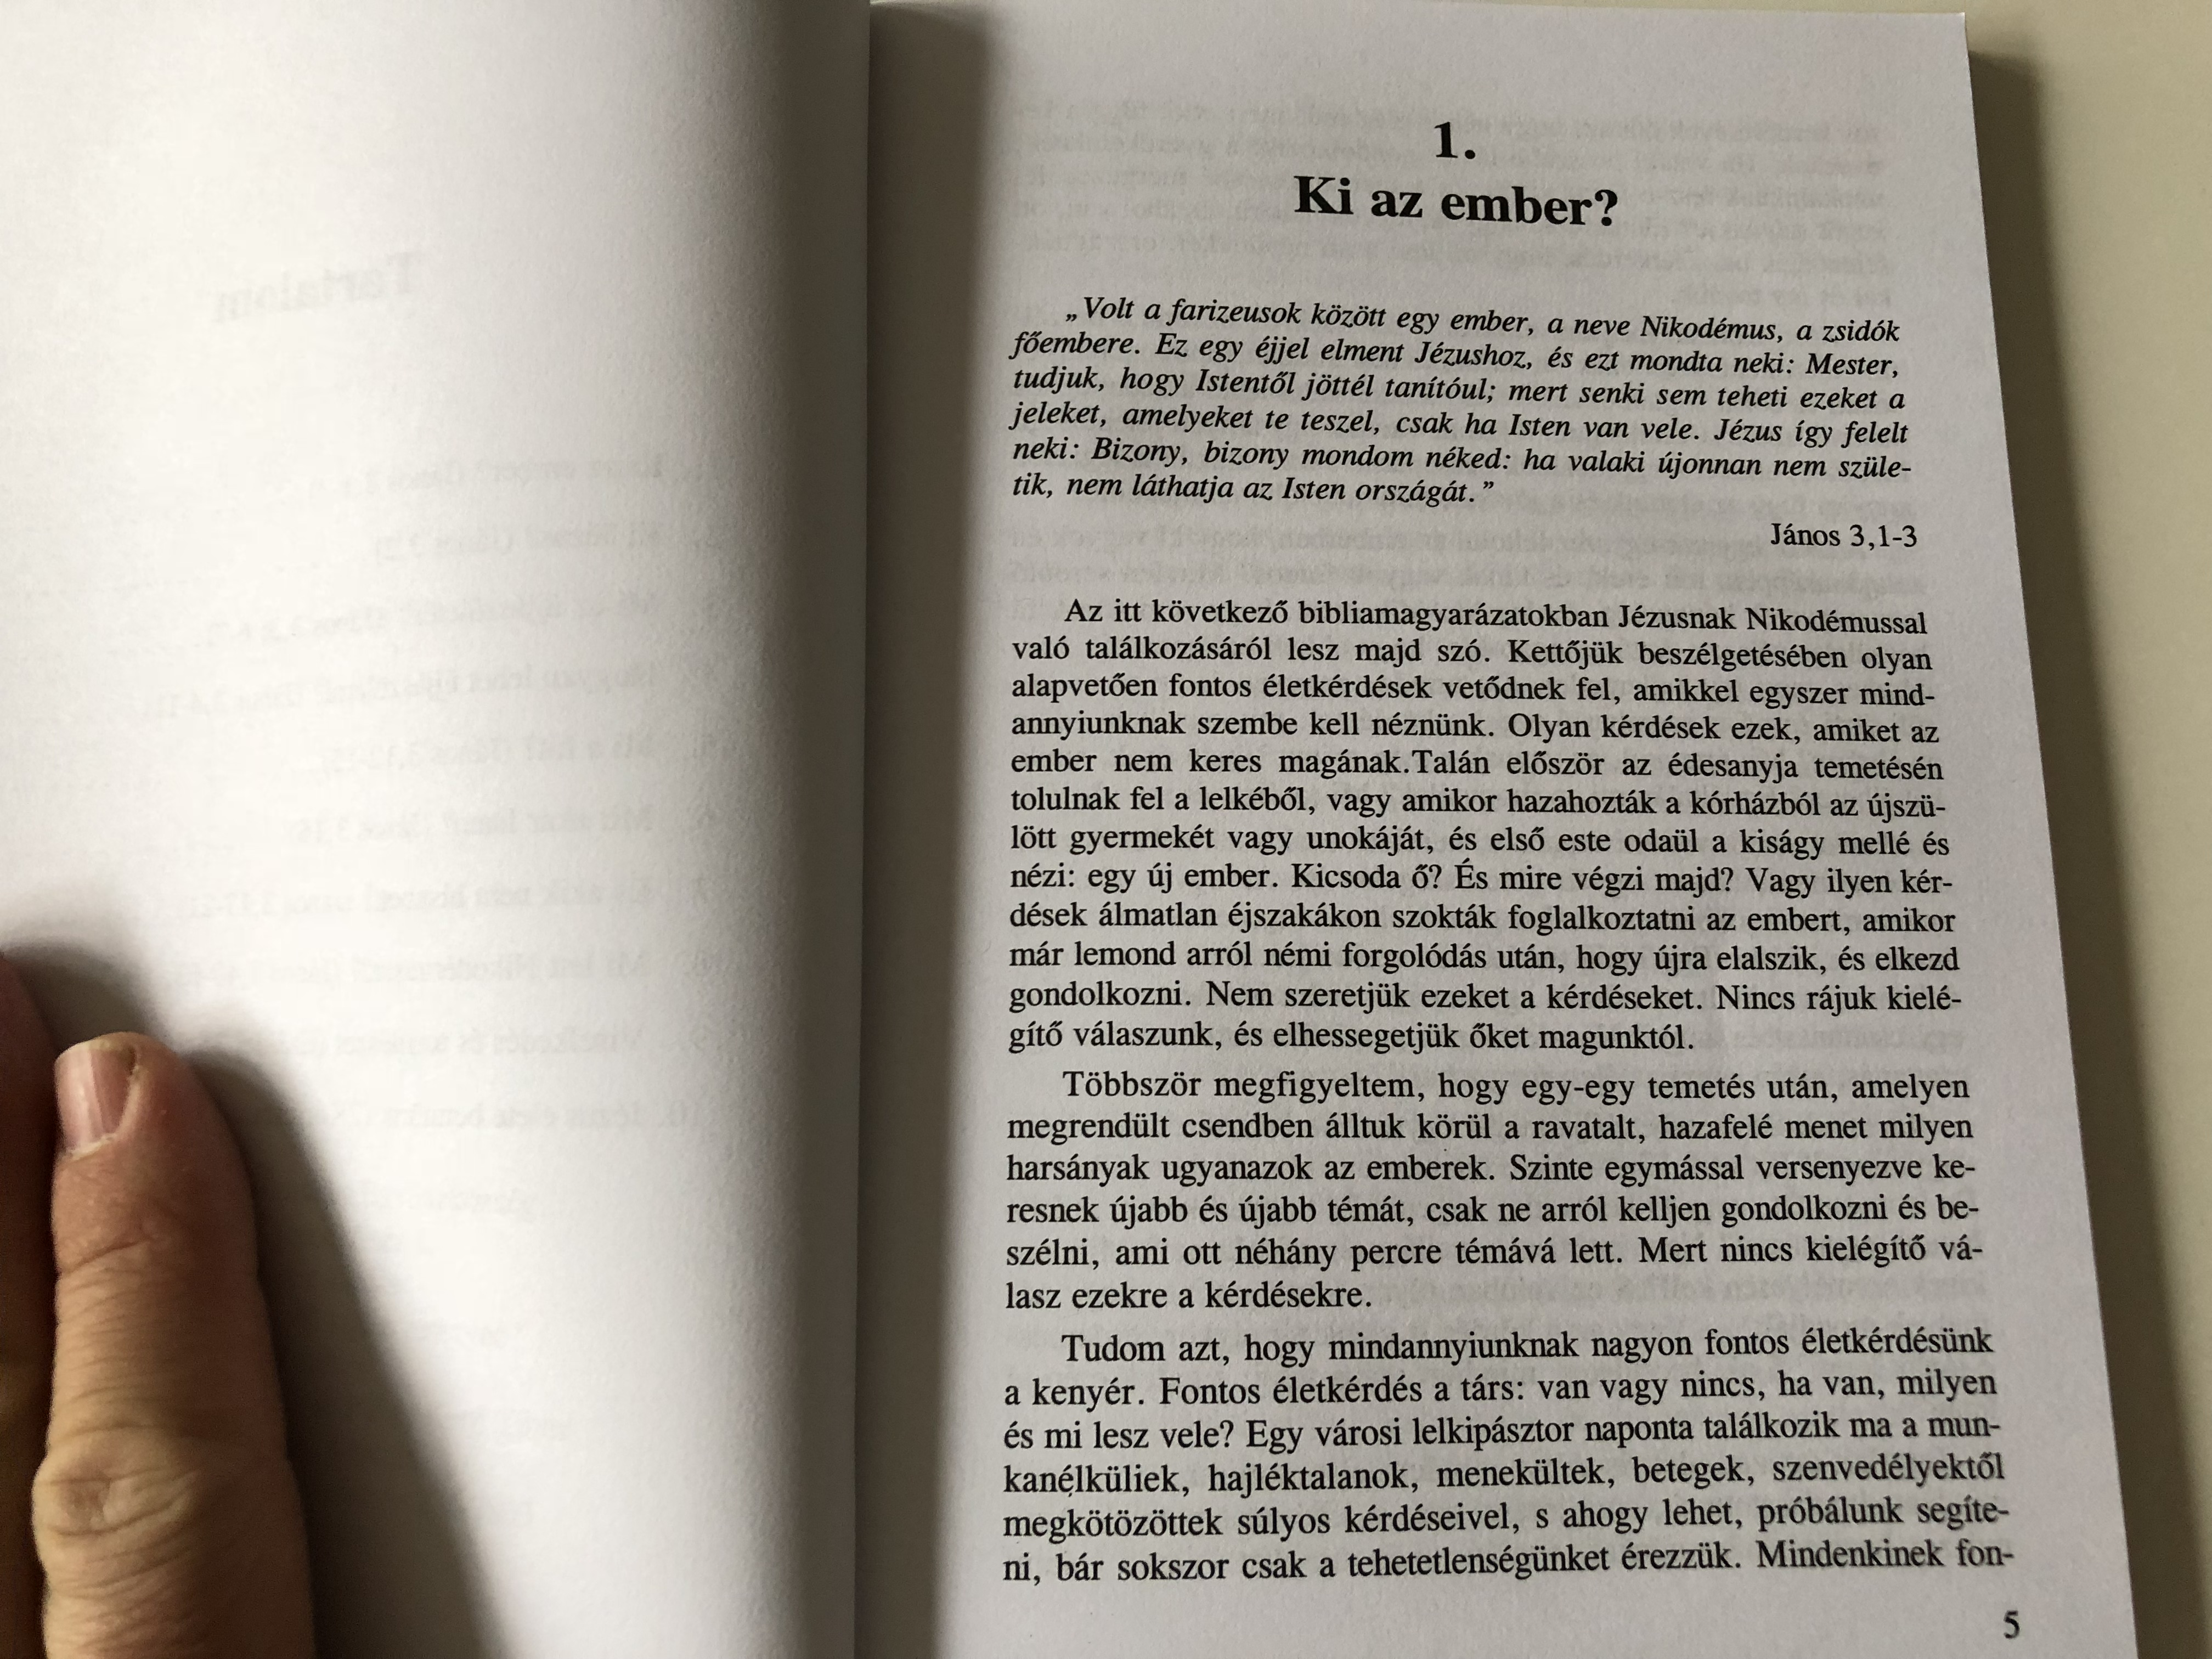 -jonnan-kell-sz-letnetek-you-have-to-be-born-again-sermons-from-1993-in-hungarian-by-cseri-k-lm-n-paperback-2001-4-.jpg